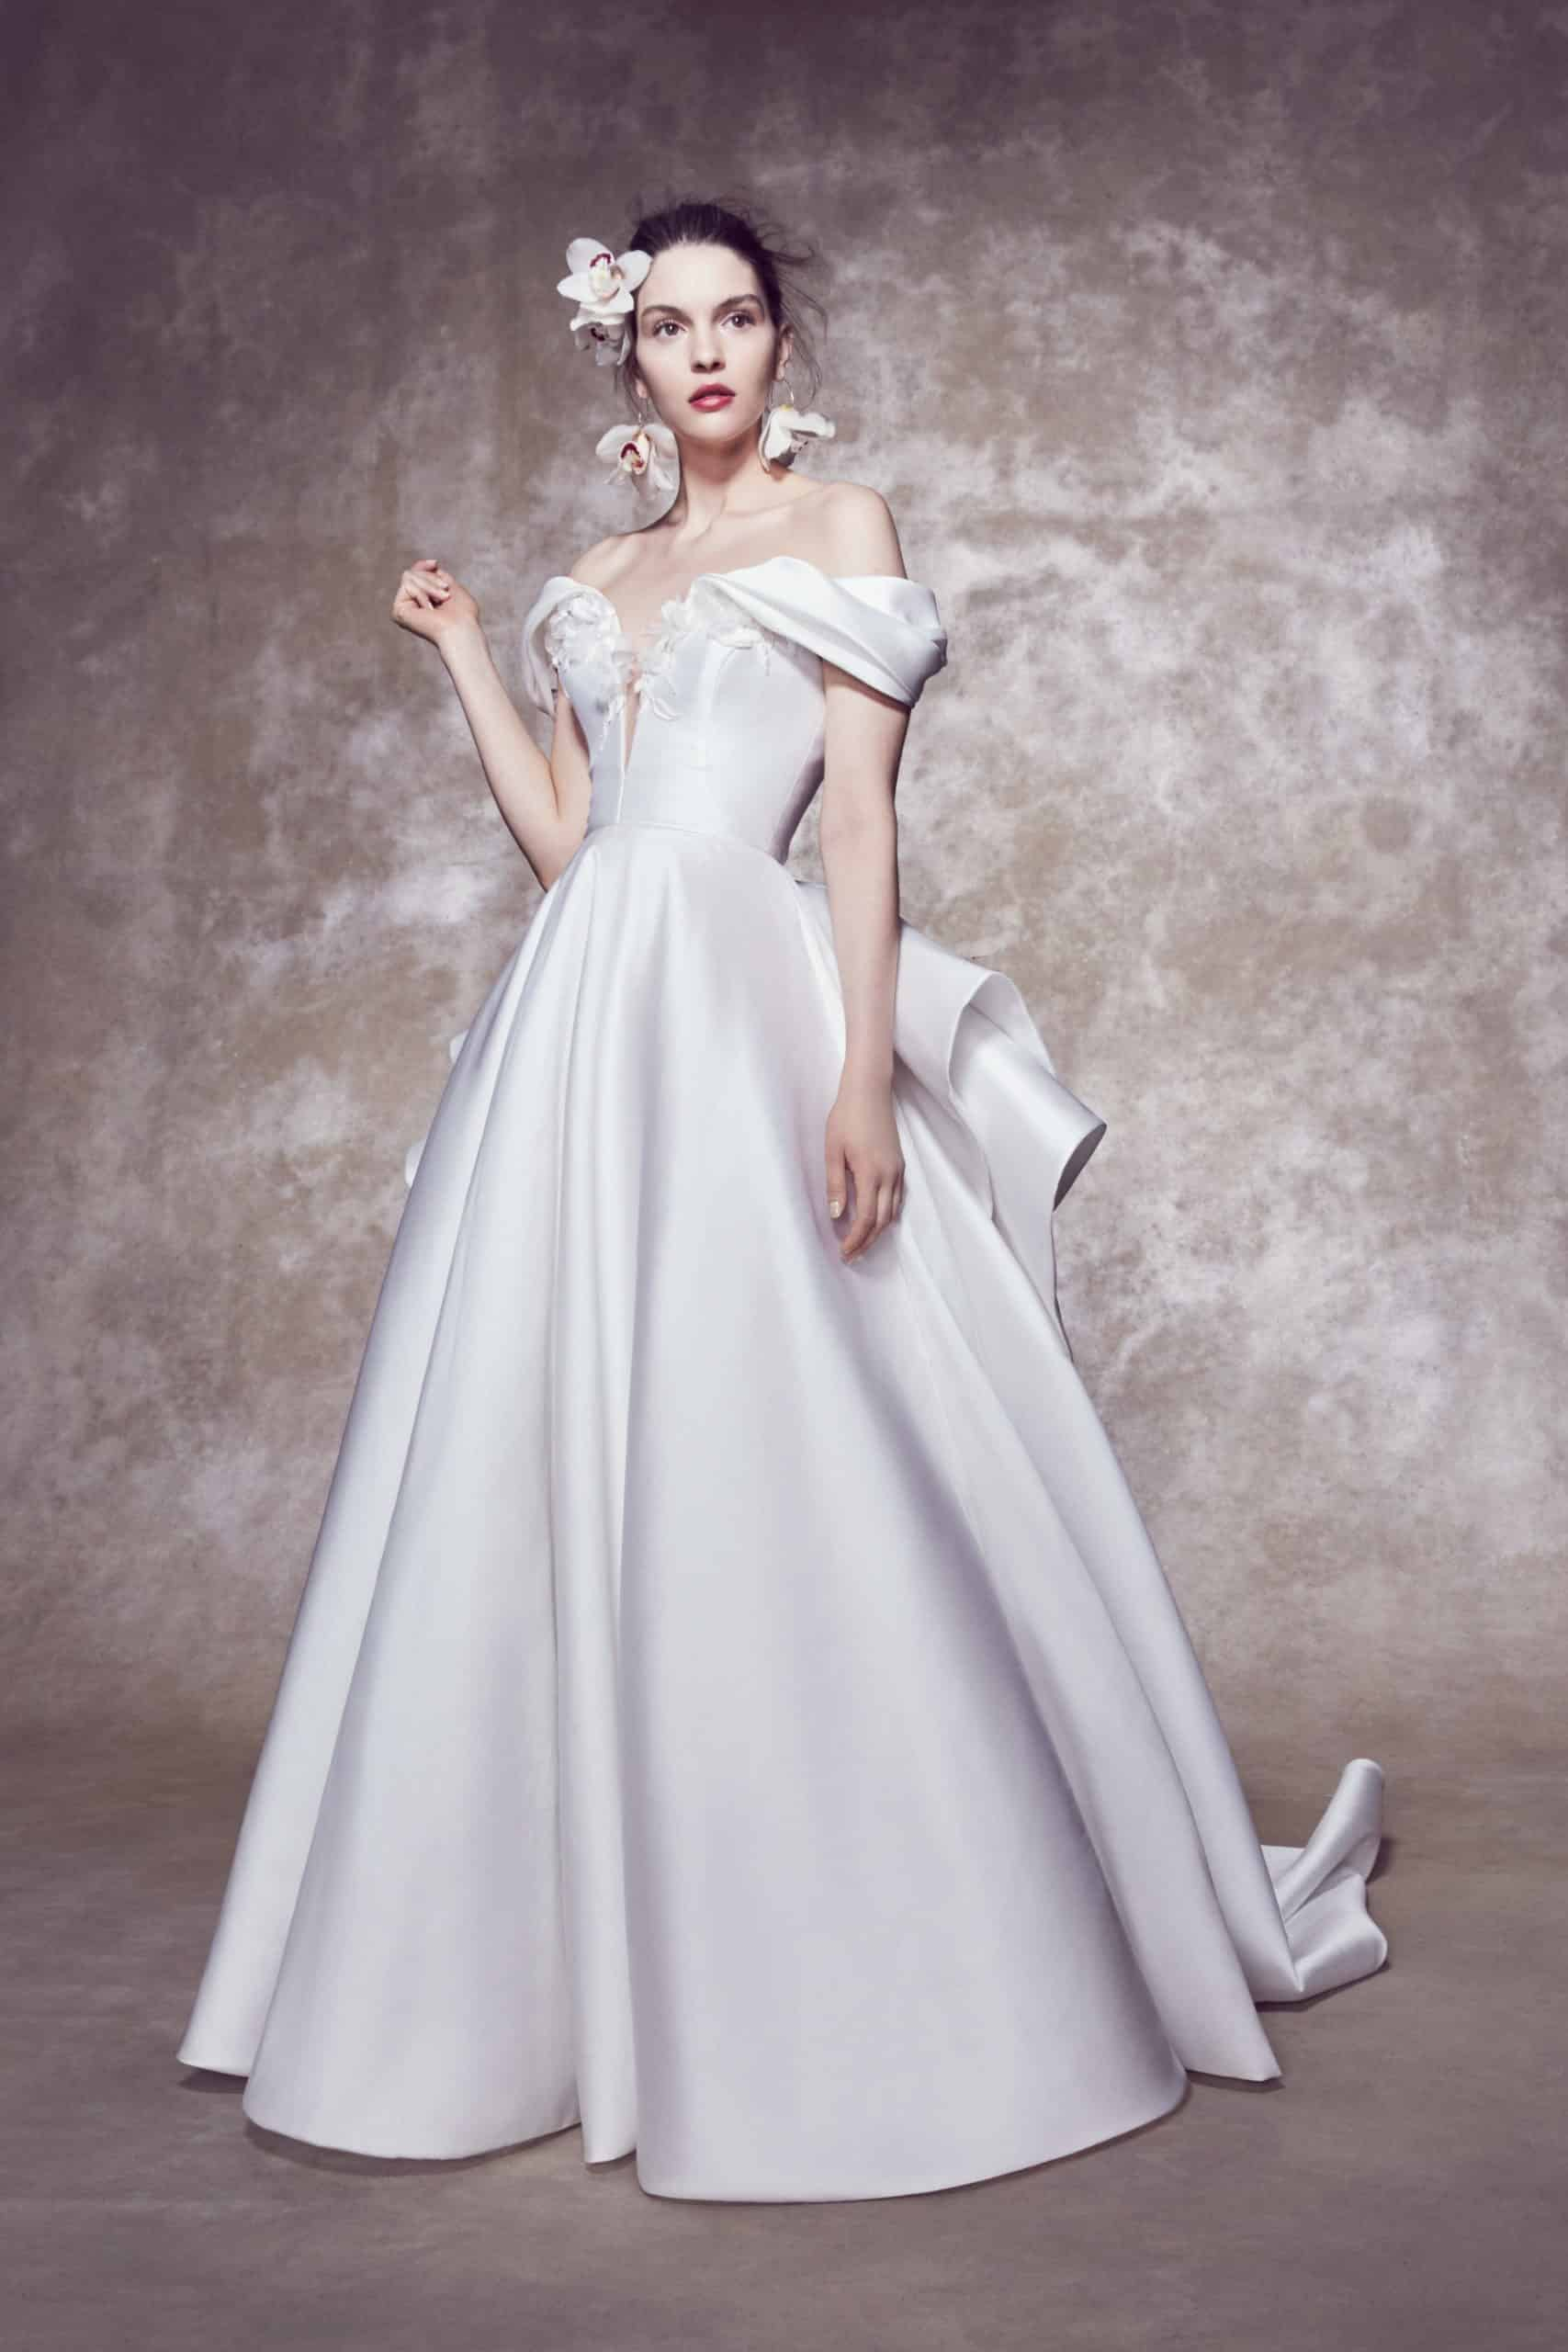 a-lined wedding dress with a back bow with a tail by Marchesa